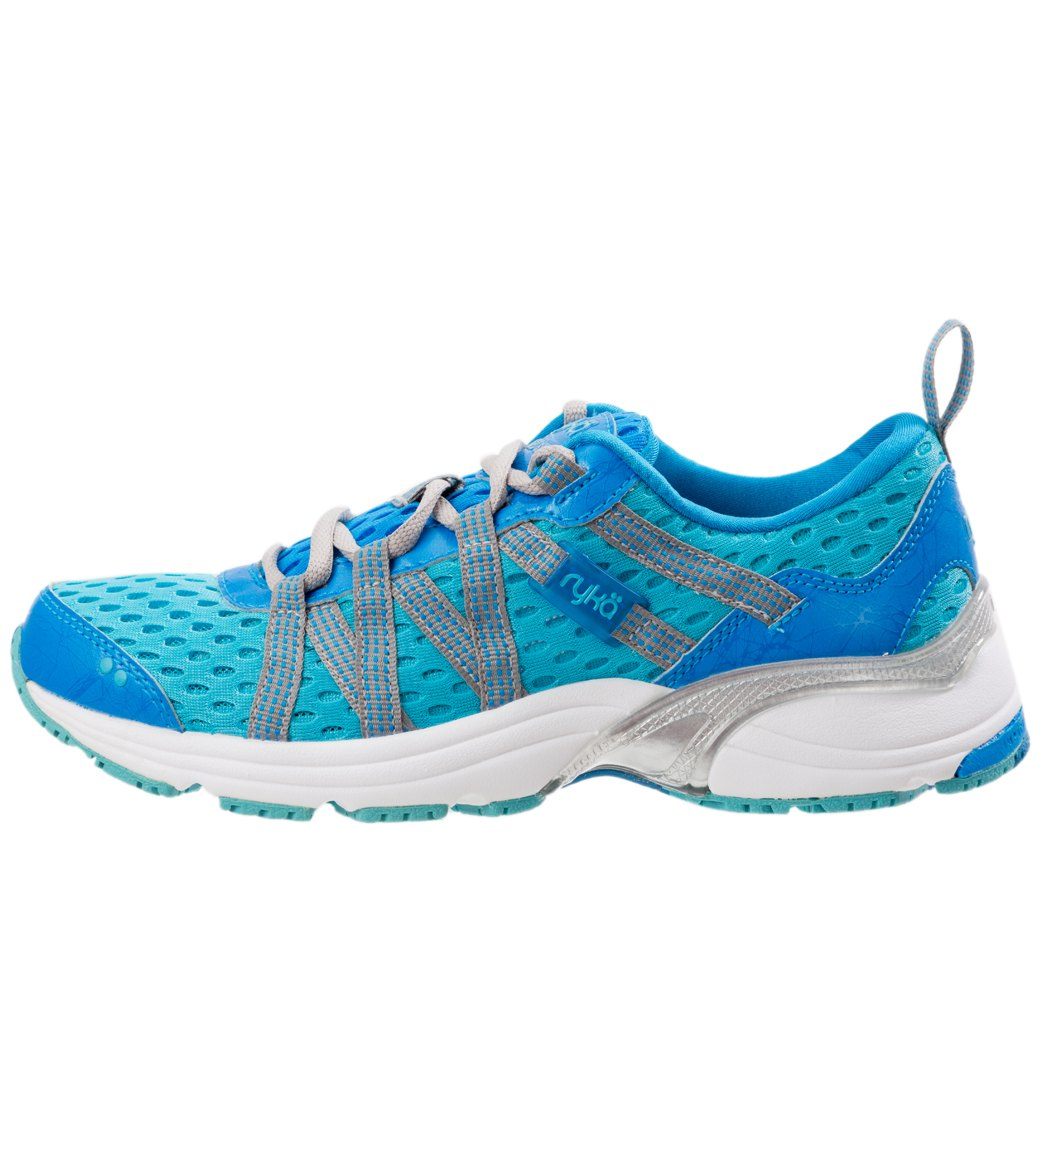 cd9fd9b62331 Ryka Women s Hydro Sport Water Shoes at SwimOutlet.com - Free Shipping